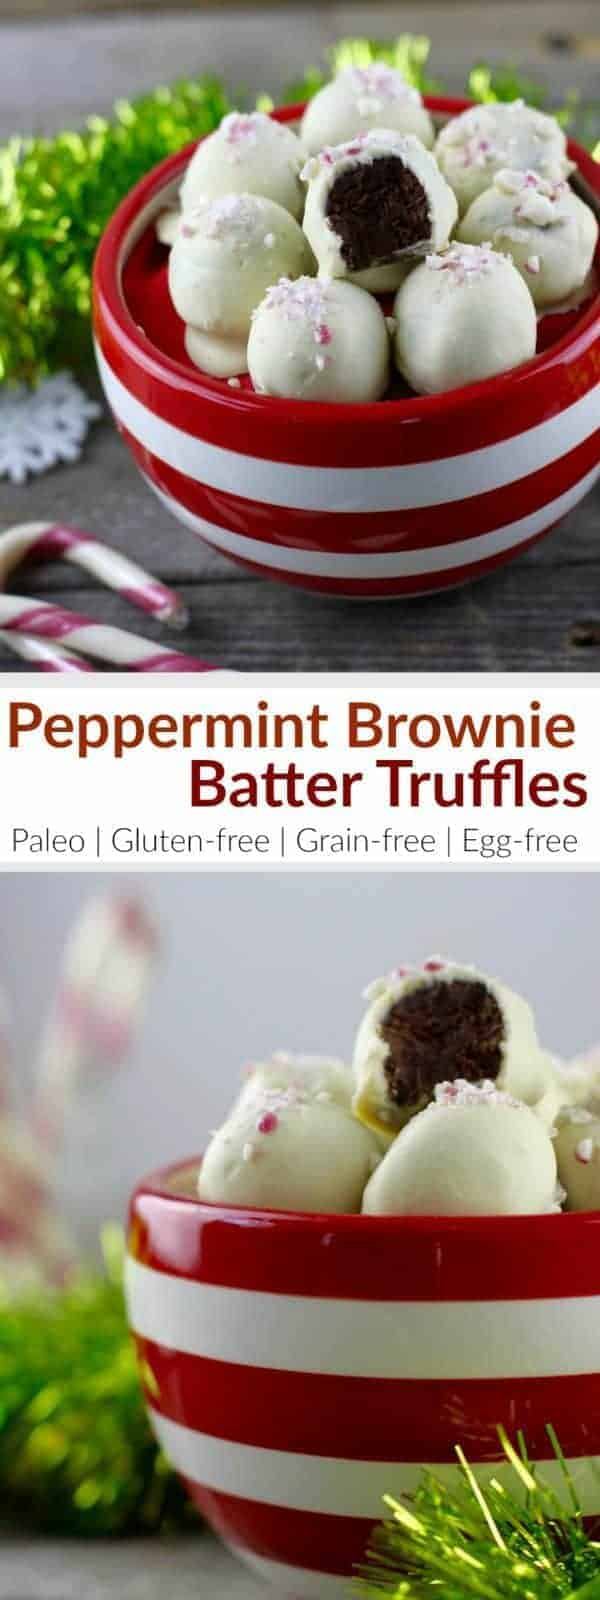 Peppermint Brownie Batter Truffles | Paleo holiday recipes | Gluten-free holiday recipes | Grain-free holiday recipes | Egg-free holiday recipes | healthy truffle recipes | peppermint flavored treats | paleo truffle recipe | gluten-free truffle recipe | egg-free truffle recipe || The Real Food Dietitians #paleodesserts #peppermintdesserts #trufflerecipe #holidaysweets